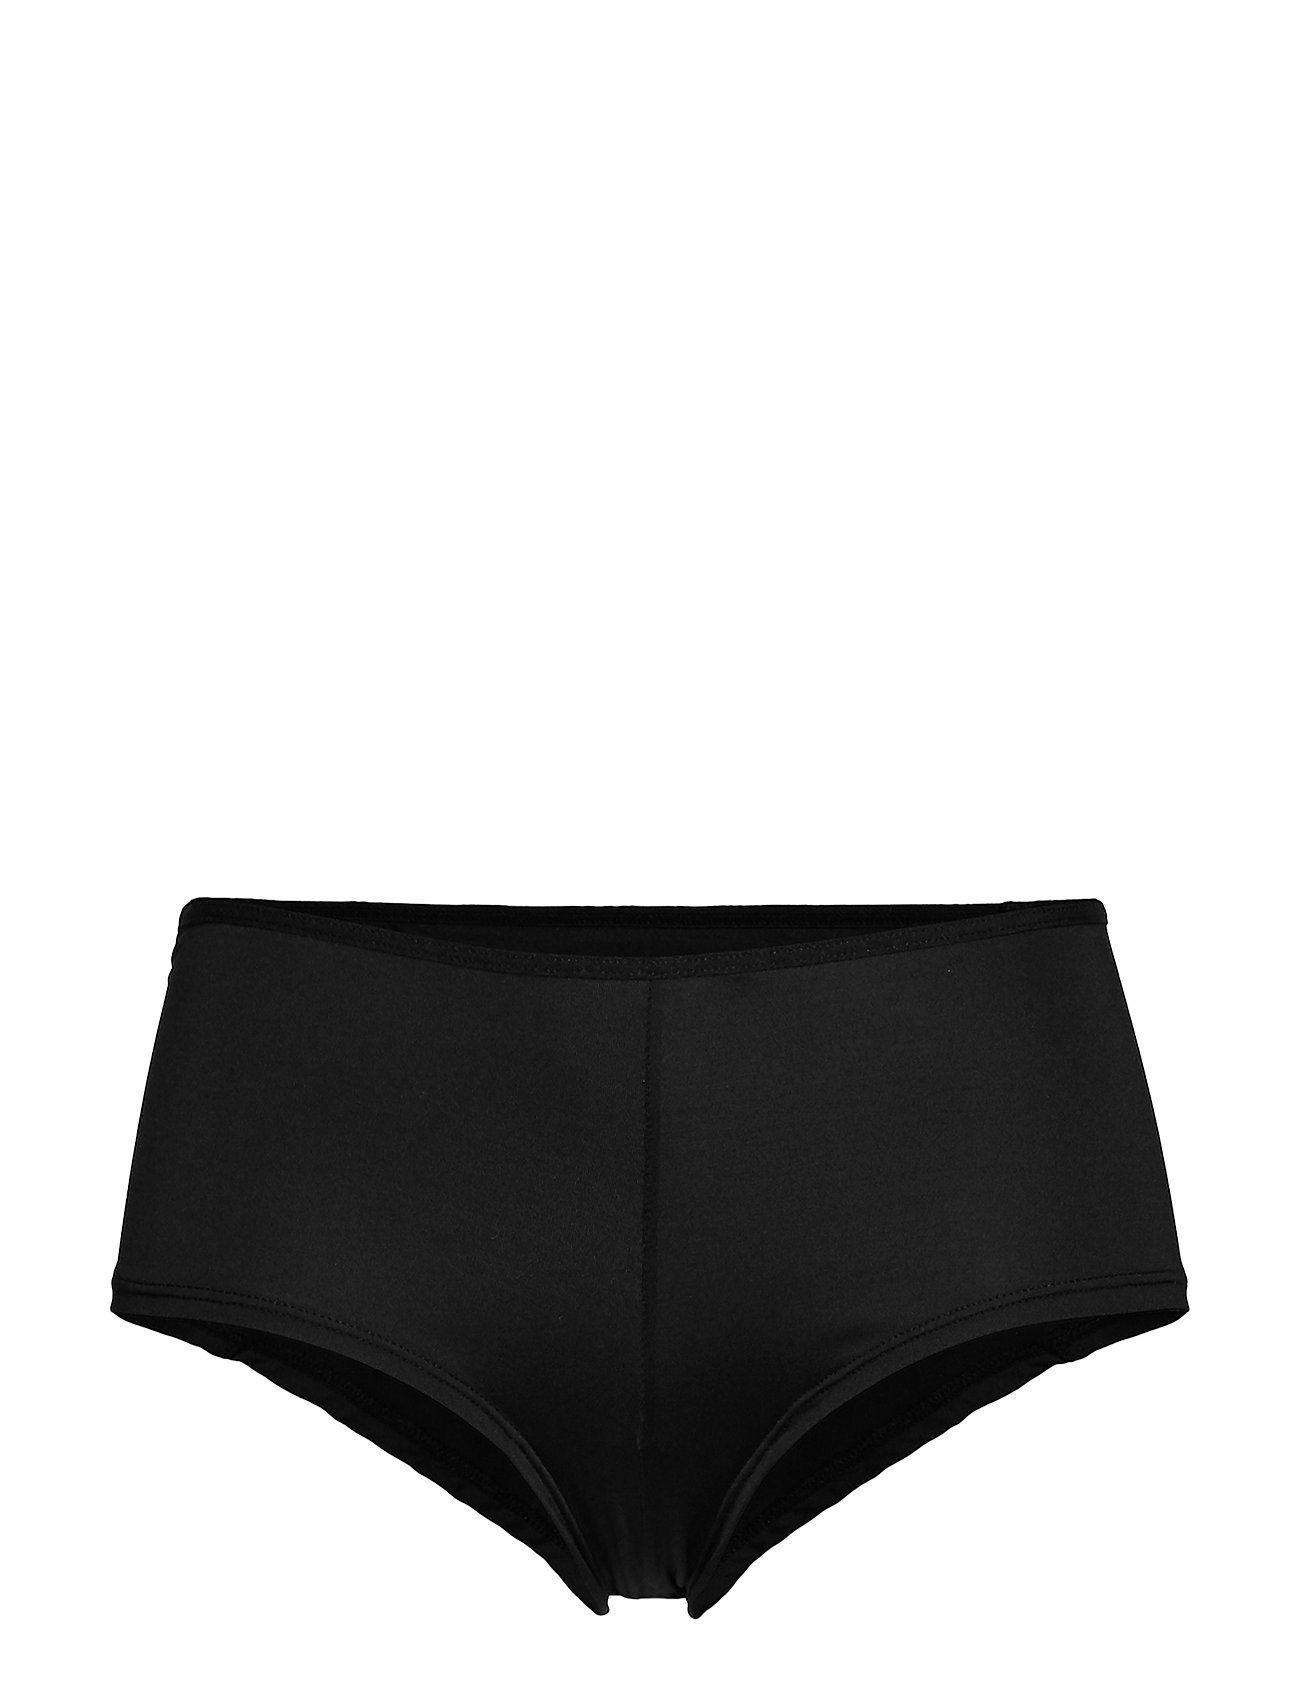 Marlies Dekkers MD D.DE PARIS BRAZILIAN SHORT - BLACK